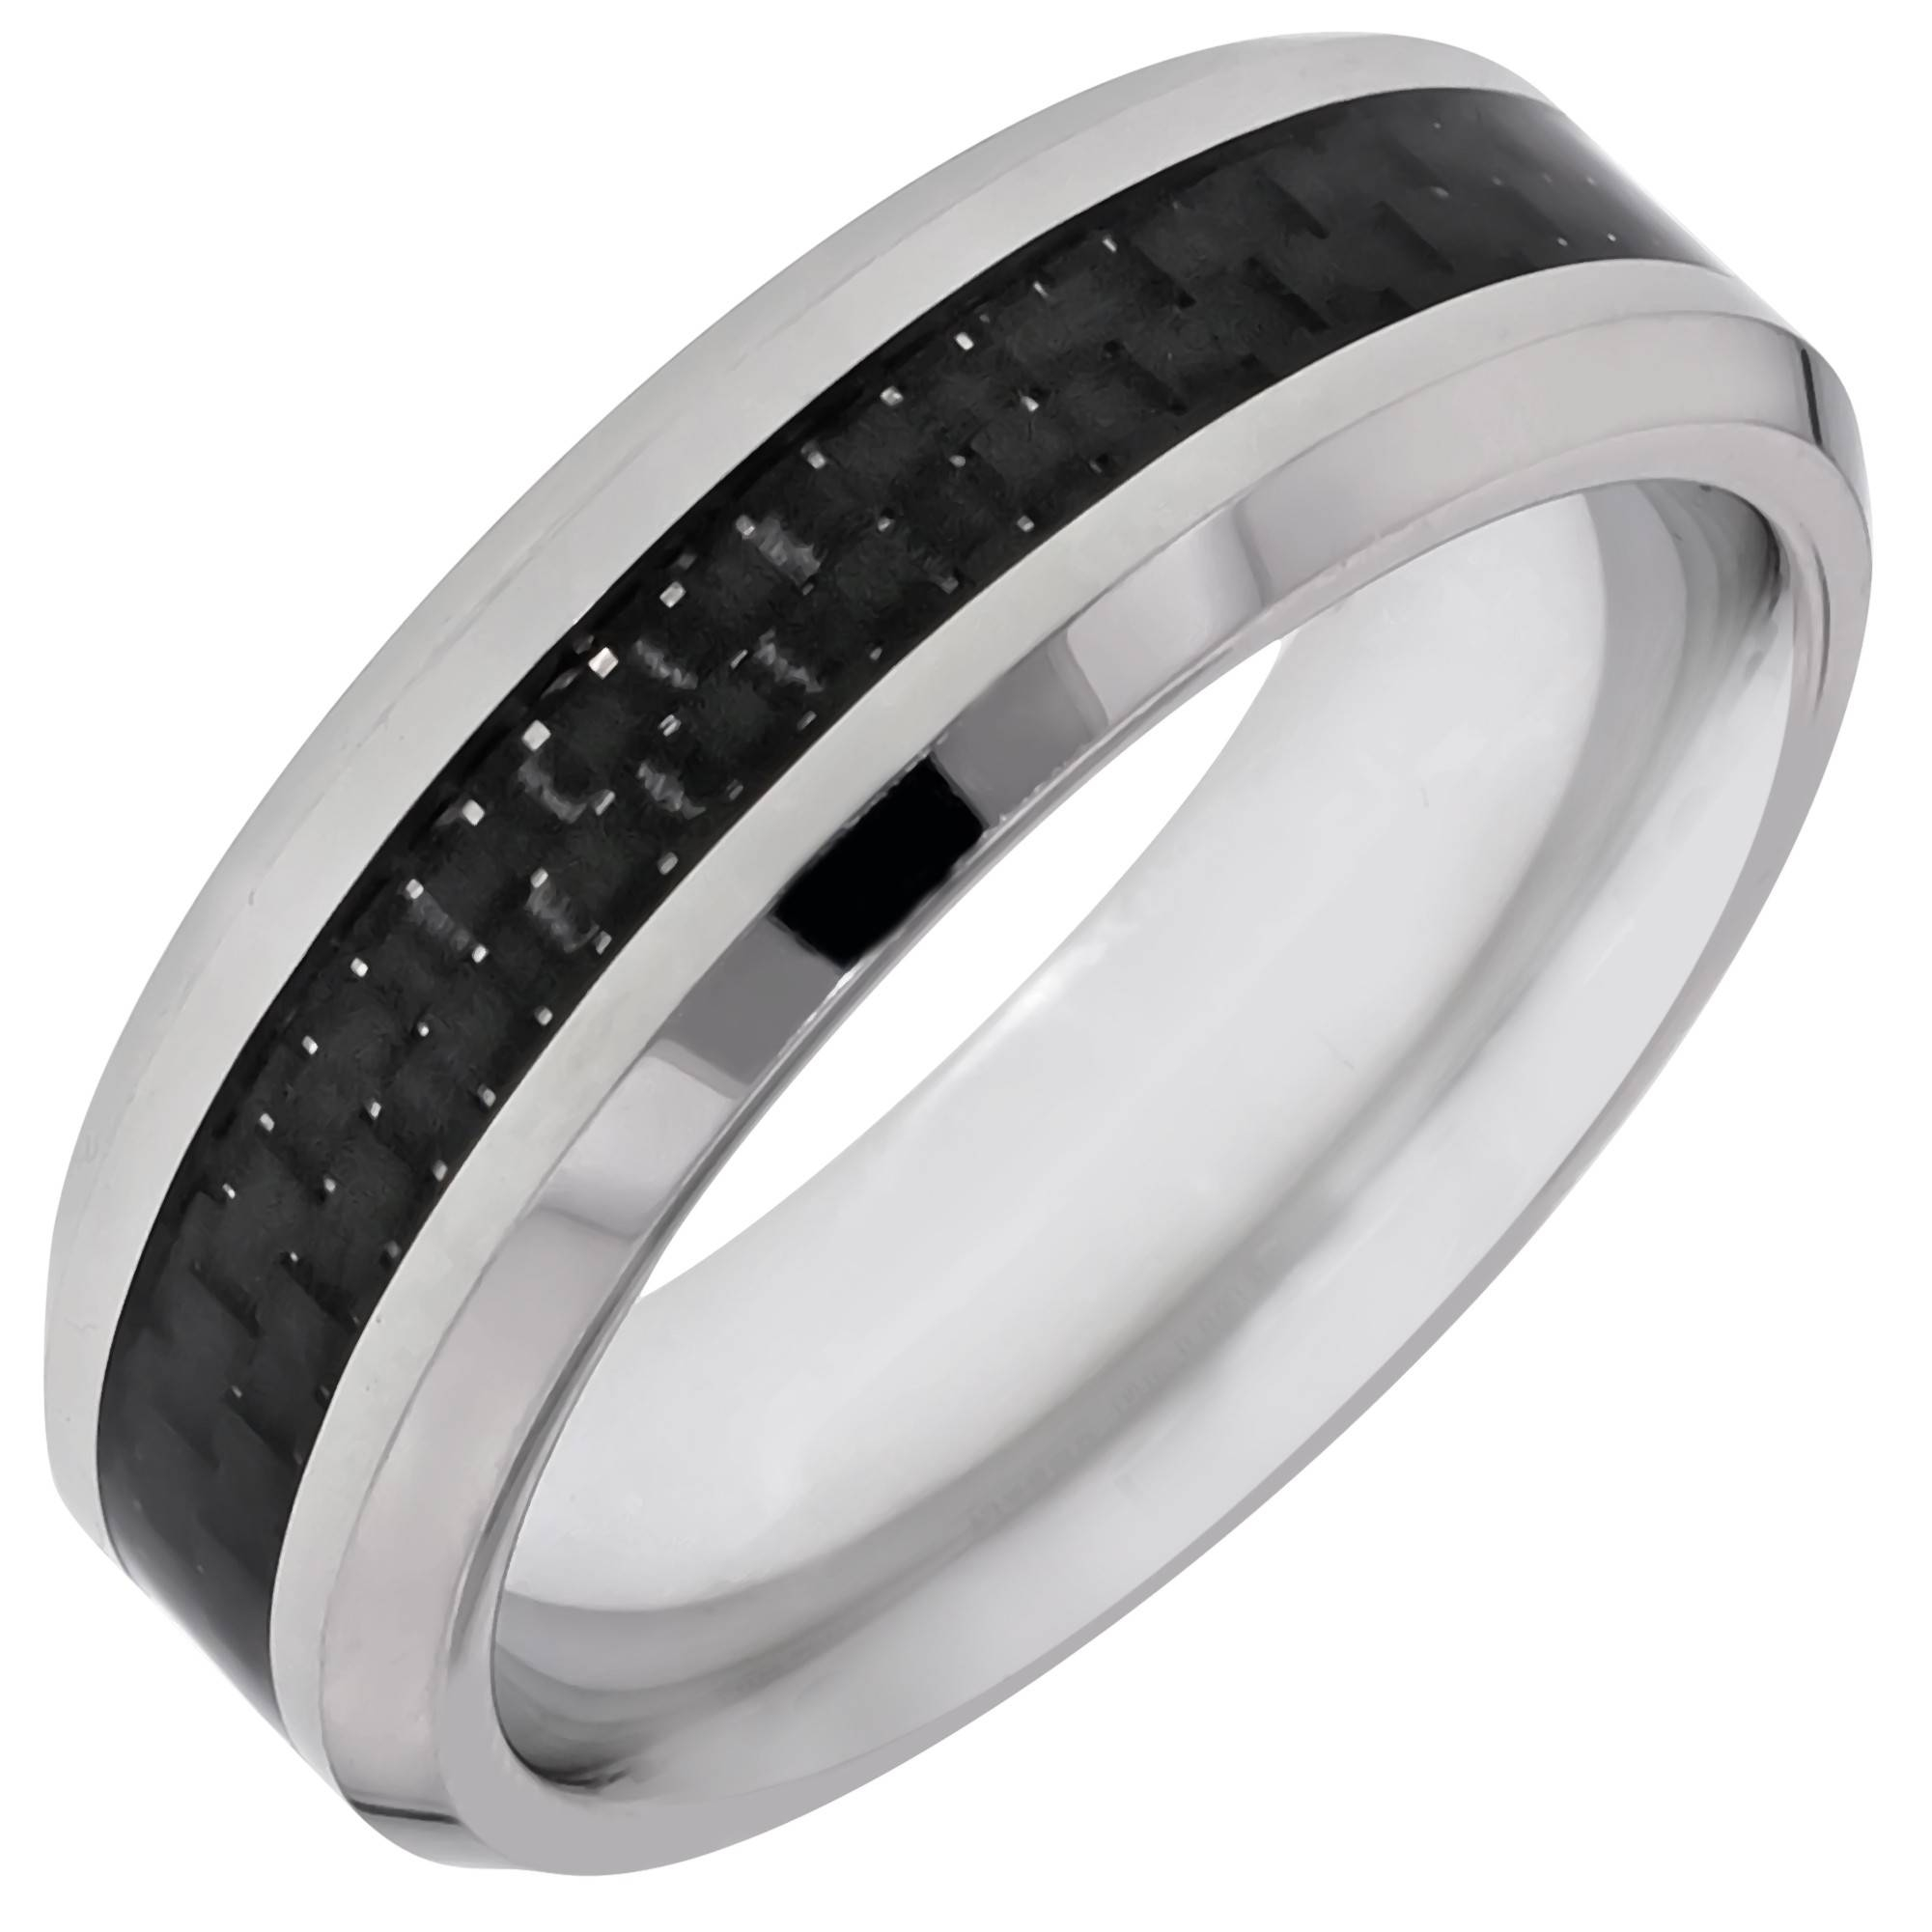 Black Silver Wedding Band Tags : Mens Comfort Band Wedding Rings Regarding Black Platinum Wedding Bands (View 13 of 15)